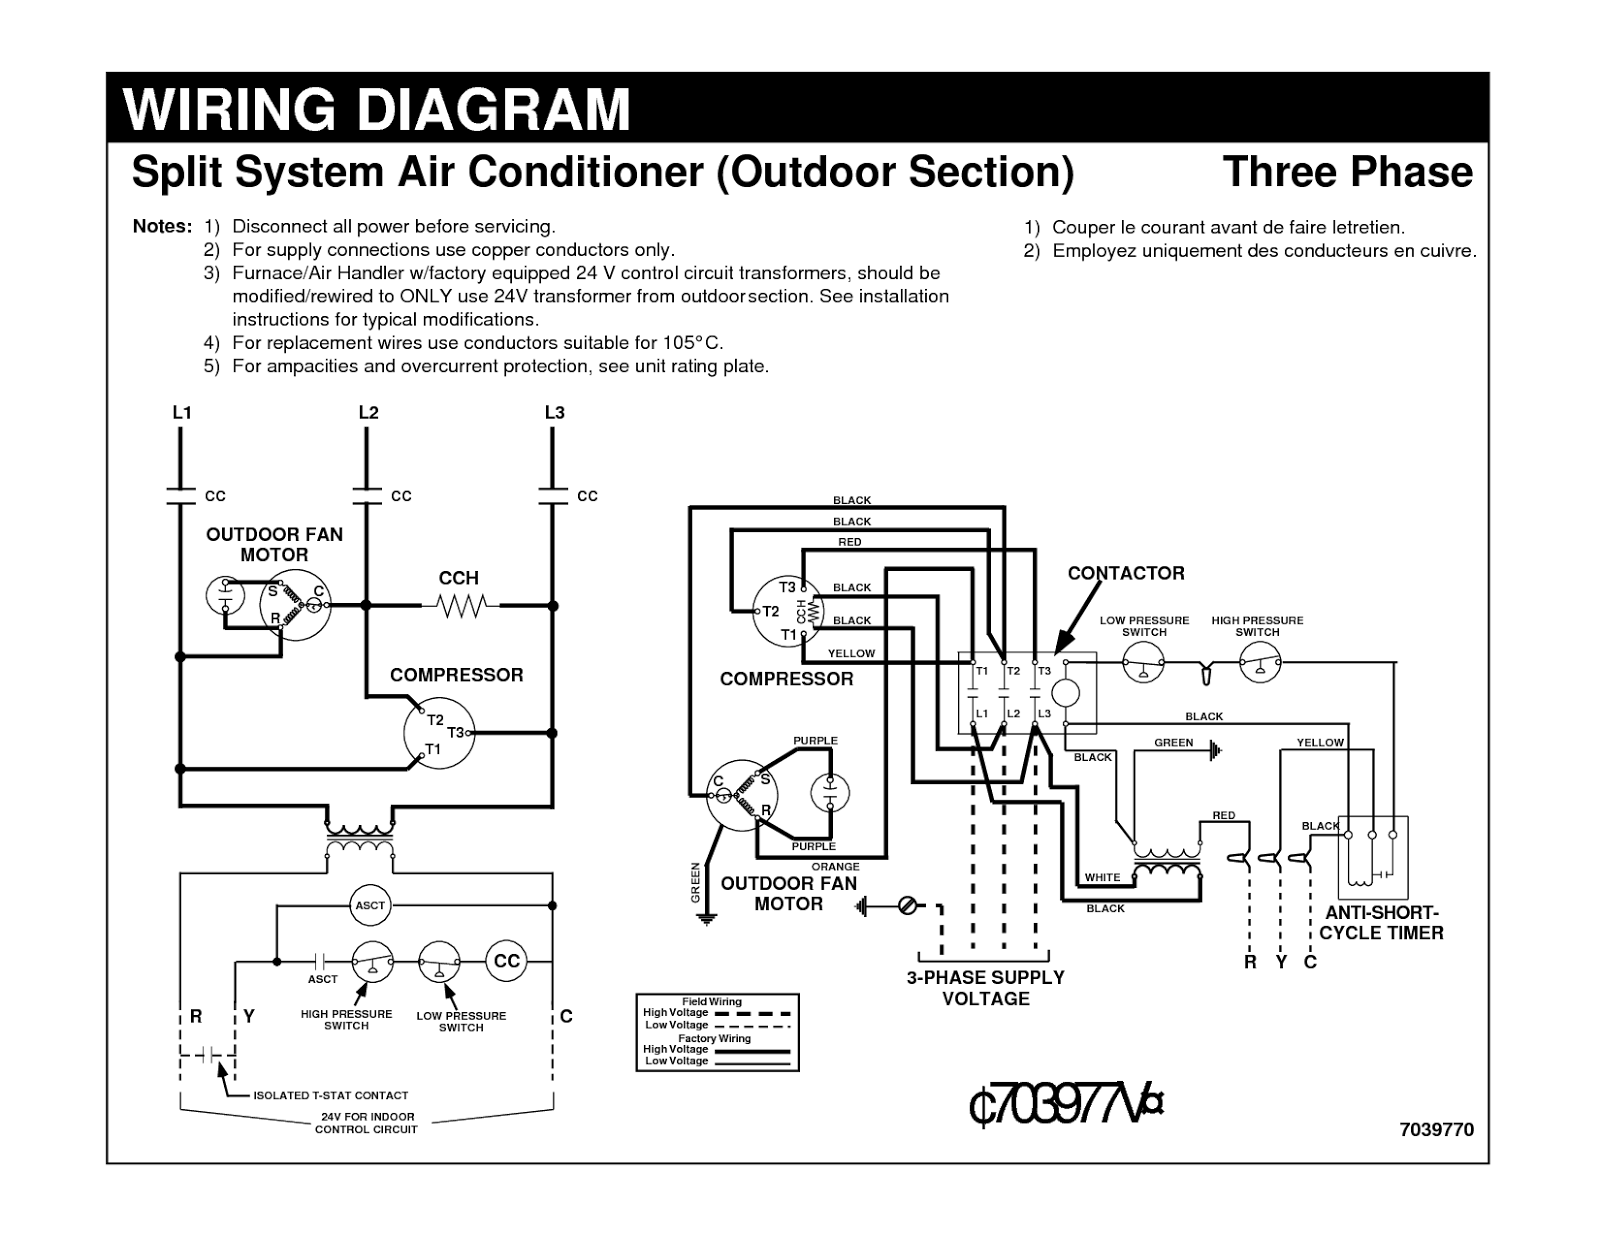 Electrical Wiring Diagrams For Air Conditioning Systems Part One Heat And Air  Conditioning Window Unit Wiring Diagram Air Conditioning Wiring Schematics